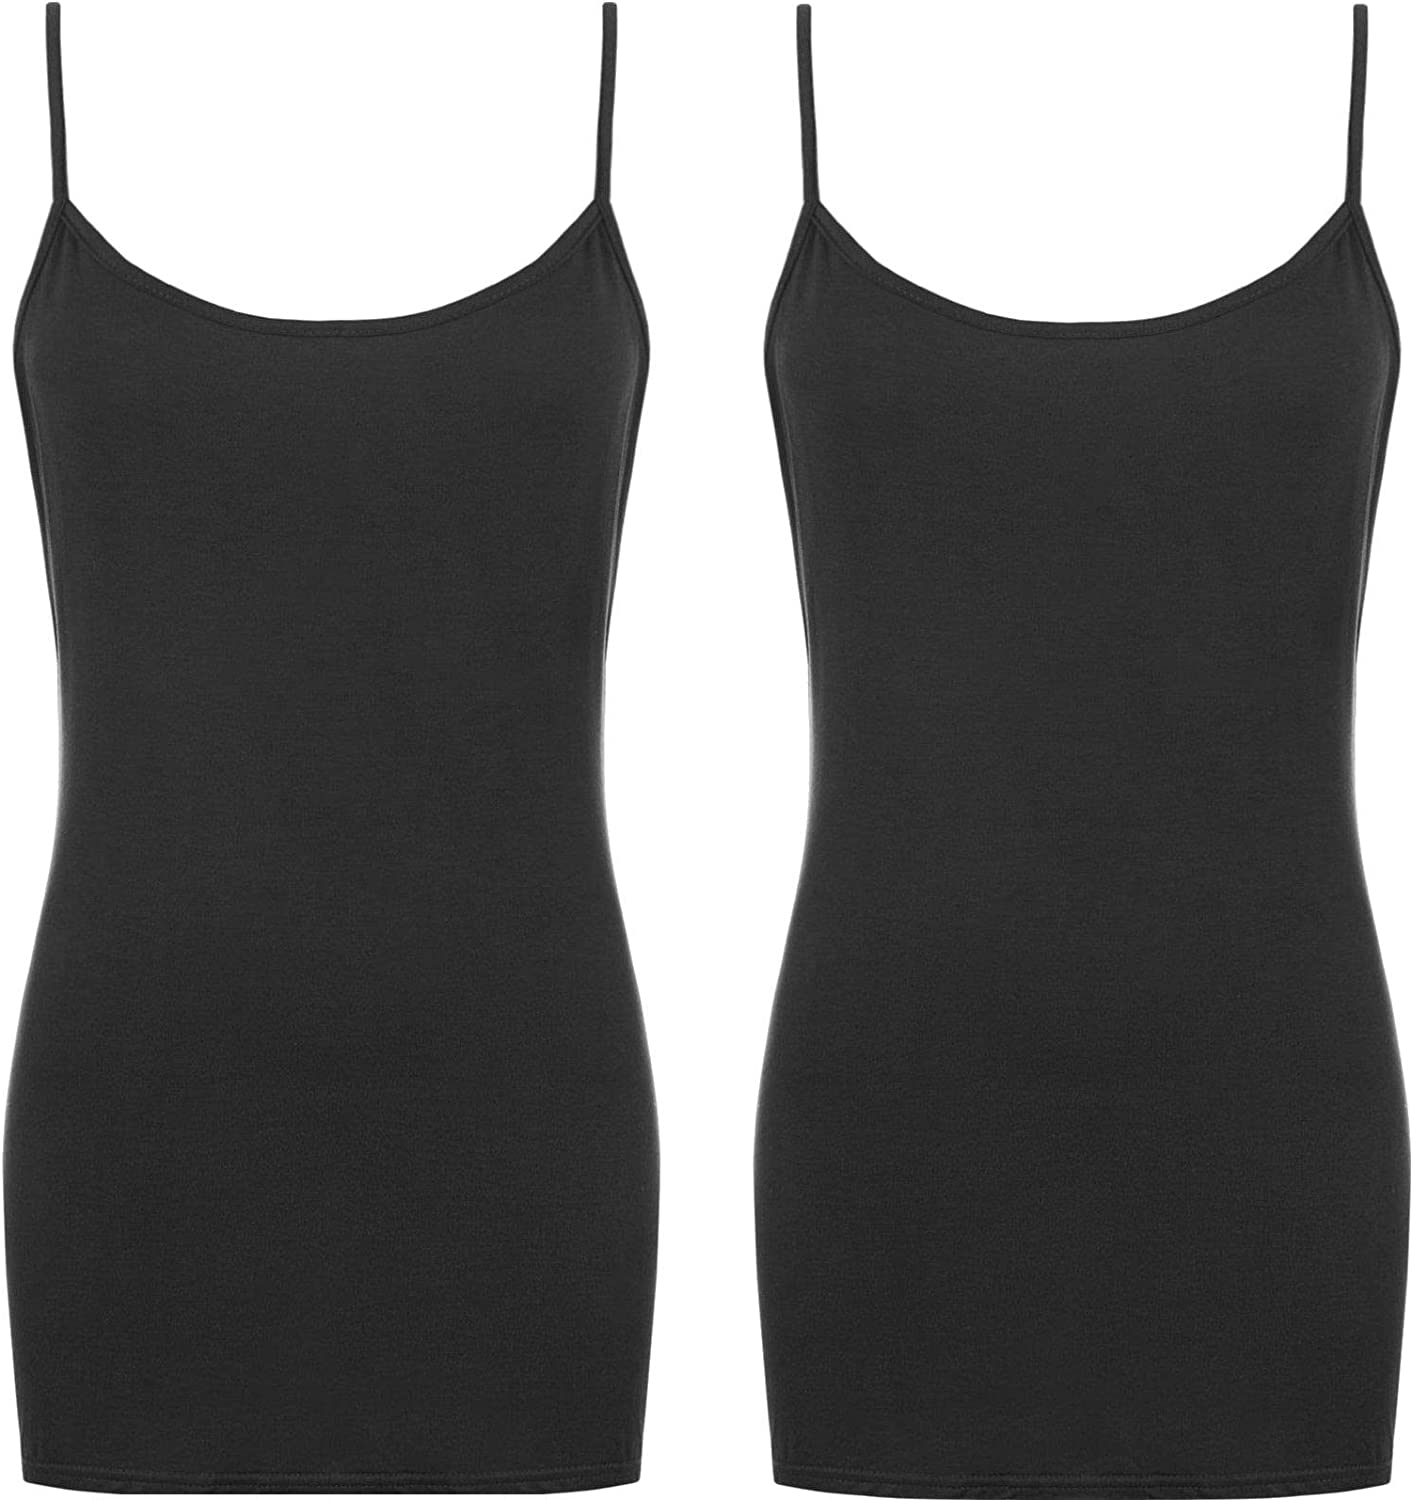 BlessFashions 2 Pack Girls Strappy Vest Top Kids Cami Tops Tank Childrens Camisole Casual